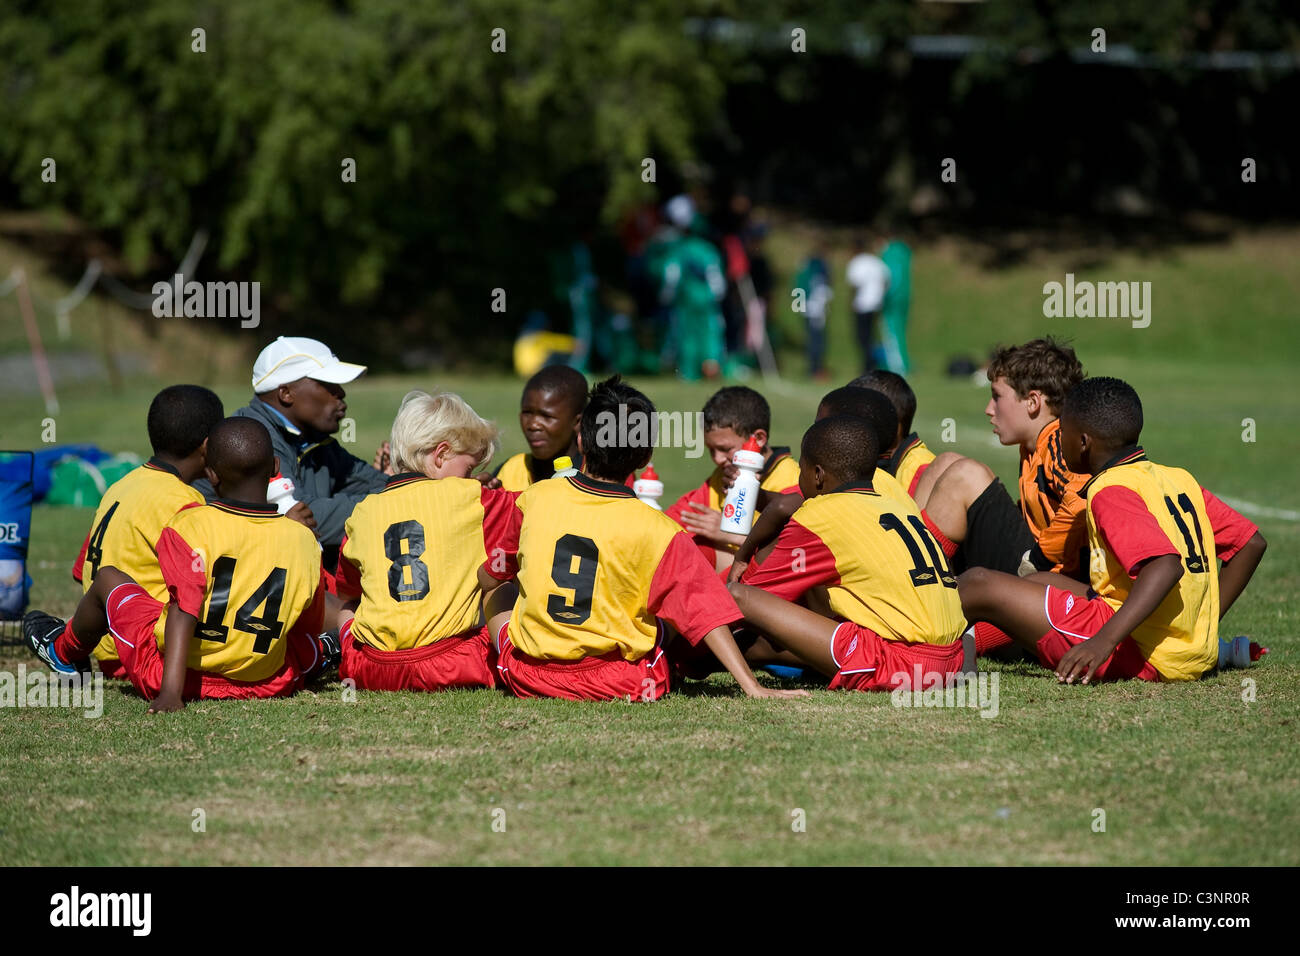 Coach intstructing U13 football players during half-time break Cape Town South of an Africa - Stock Image